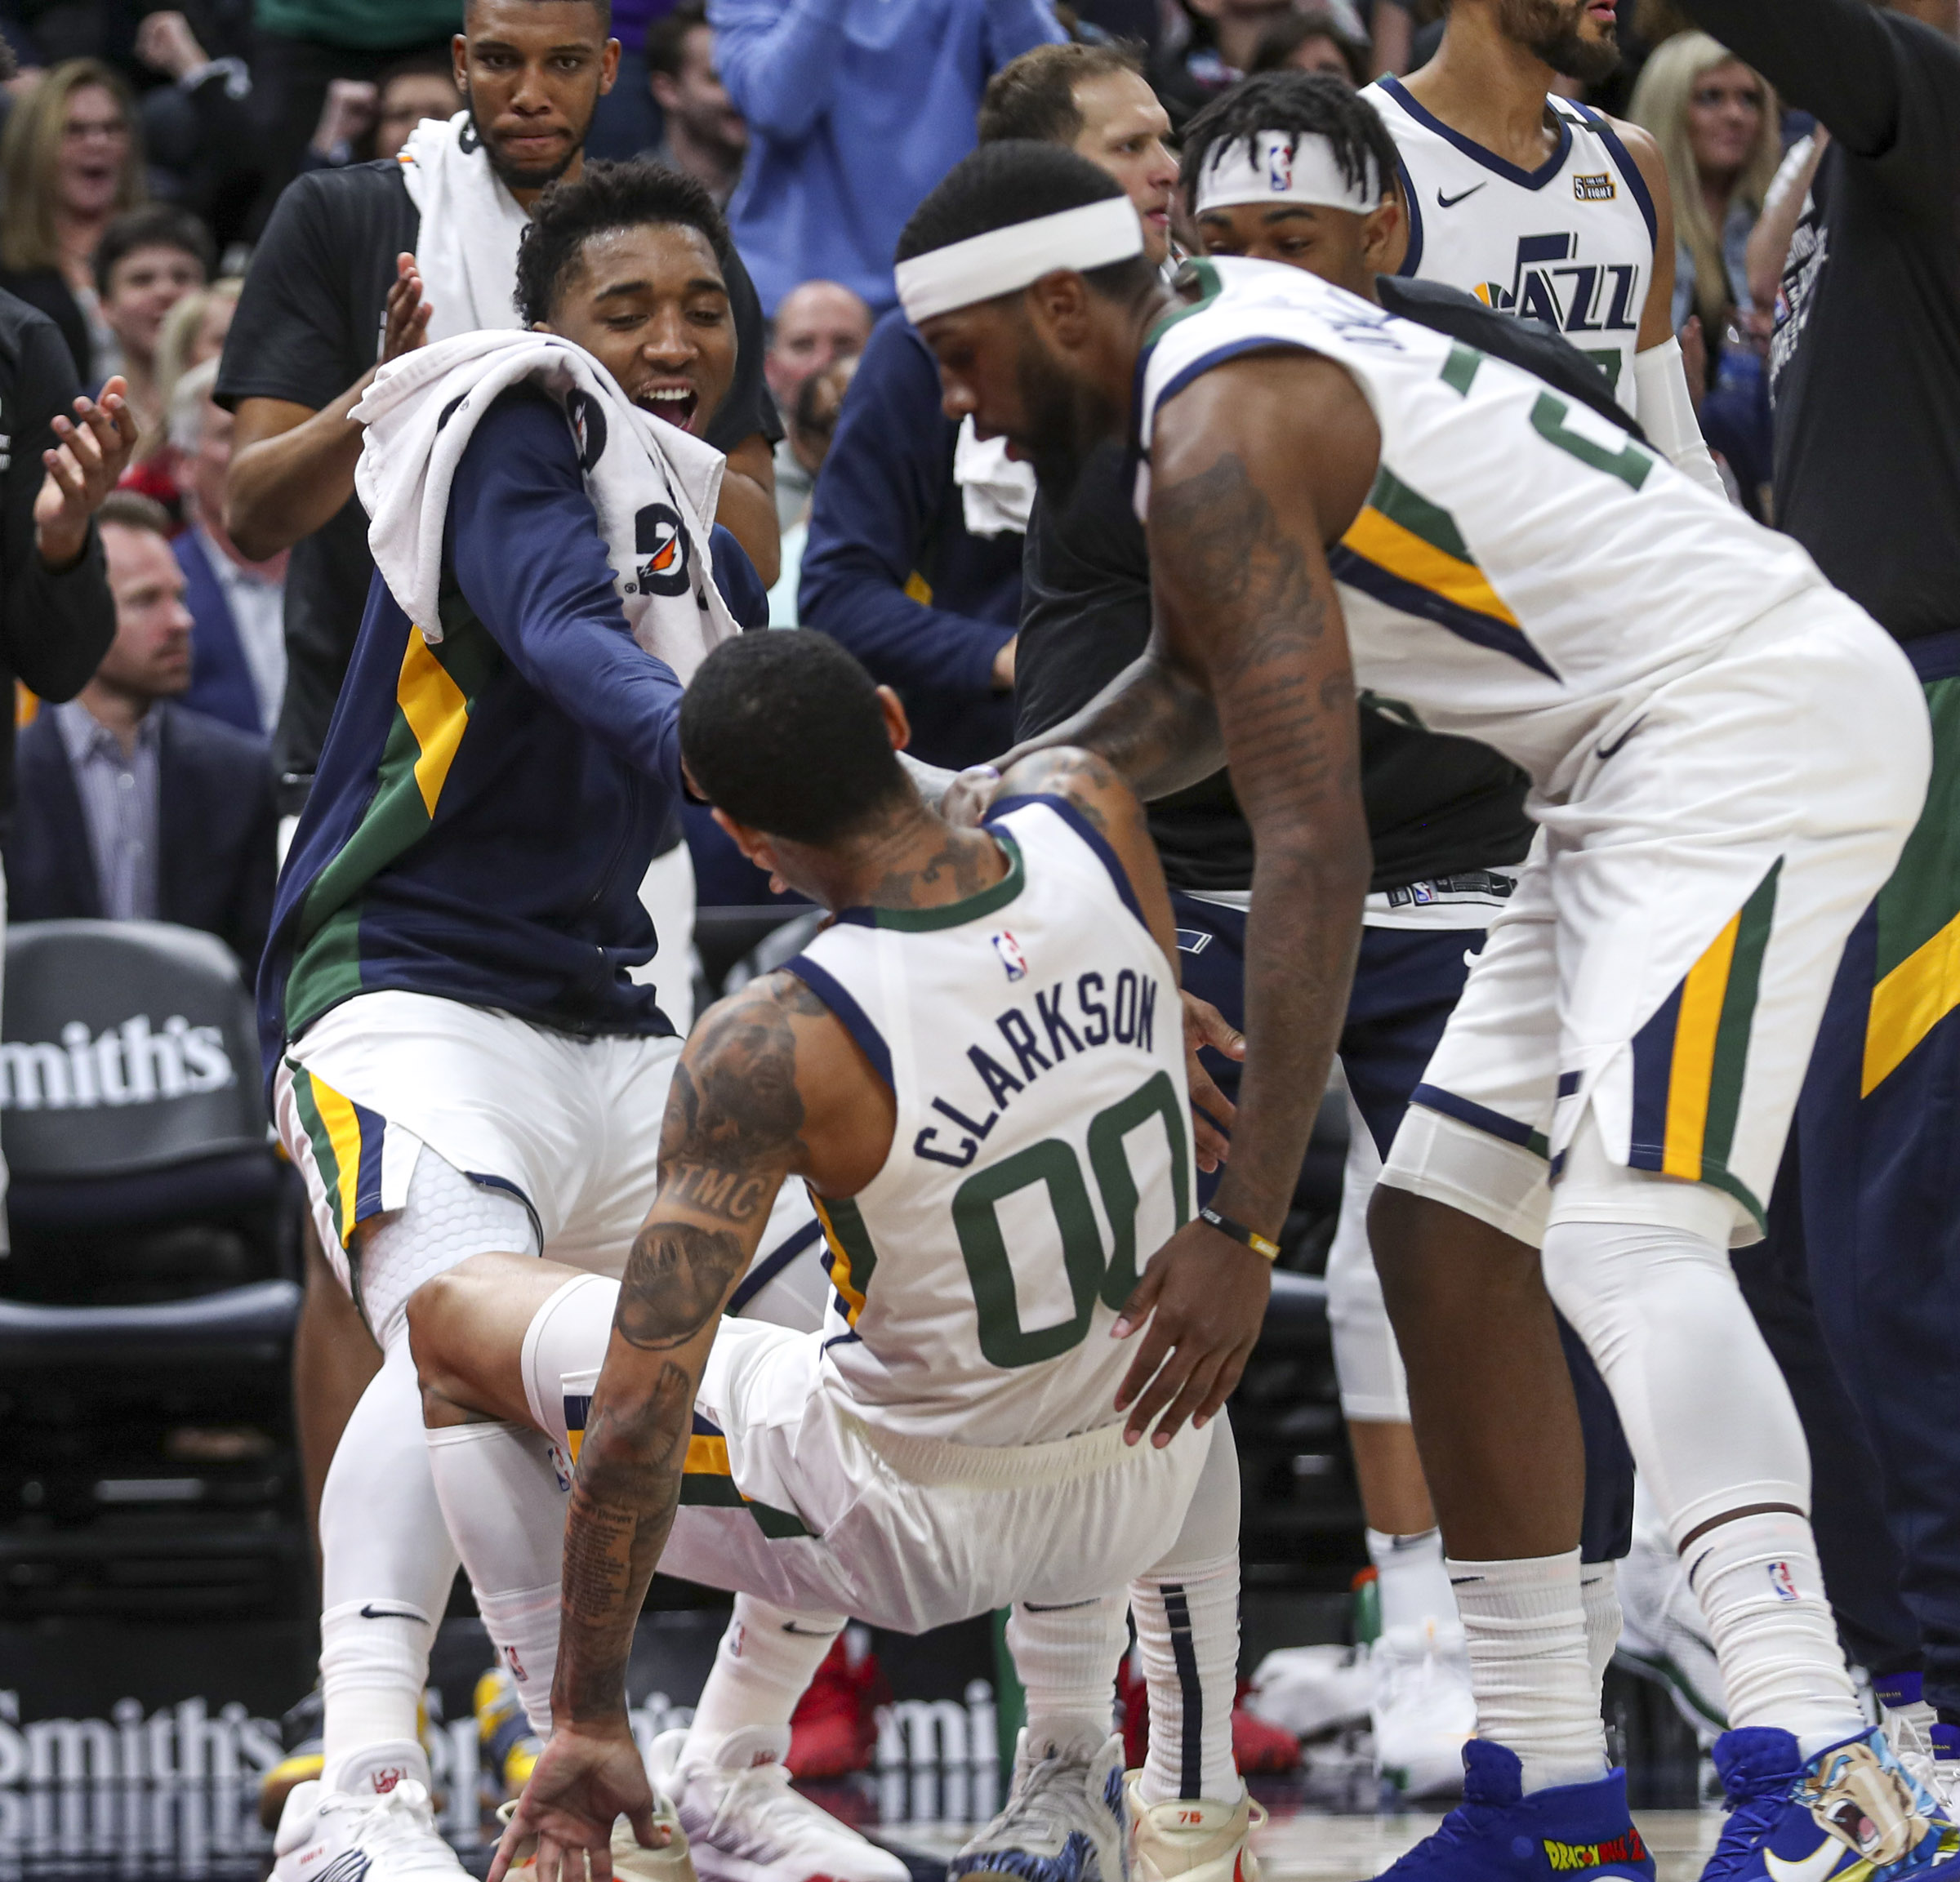 犹他爵士 guard Donovan Mitchell (45), left, 和 犹他爵士 forward Royce O'Neale (23) leap from the bench to help up 犹他爵士 guard Jordan Clarkson (00) after was fouled during the Houston Rockets at 犹他爵士 NBA basketball game at Vivint Arena in Salt Lake City on Saturday, Feb. 22, 2020.